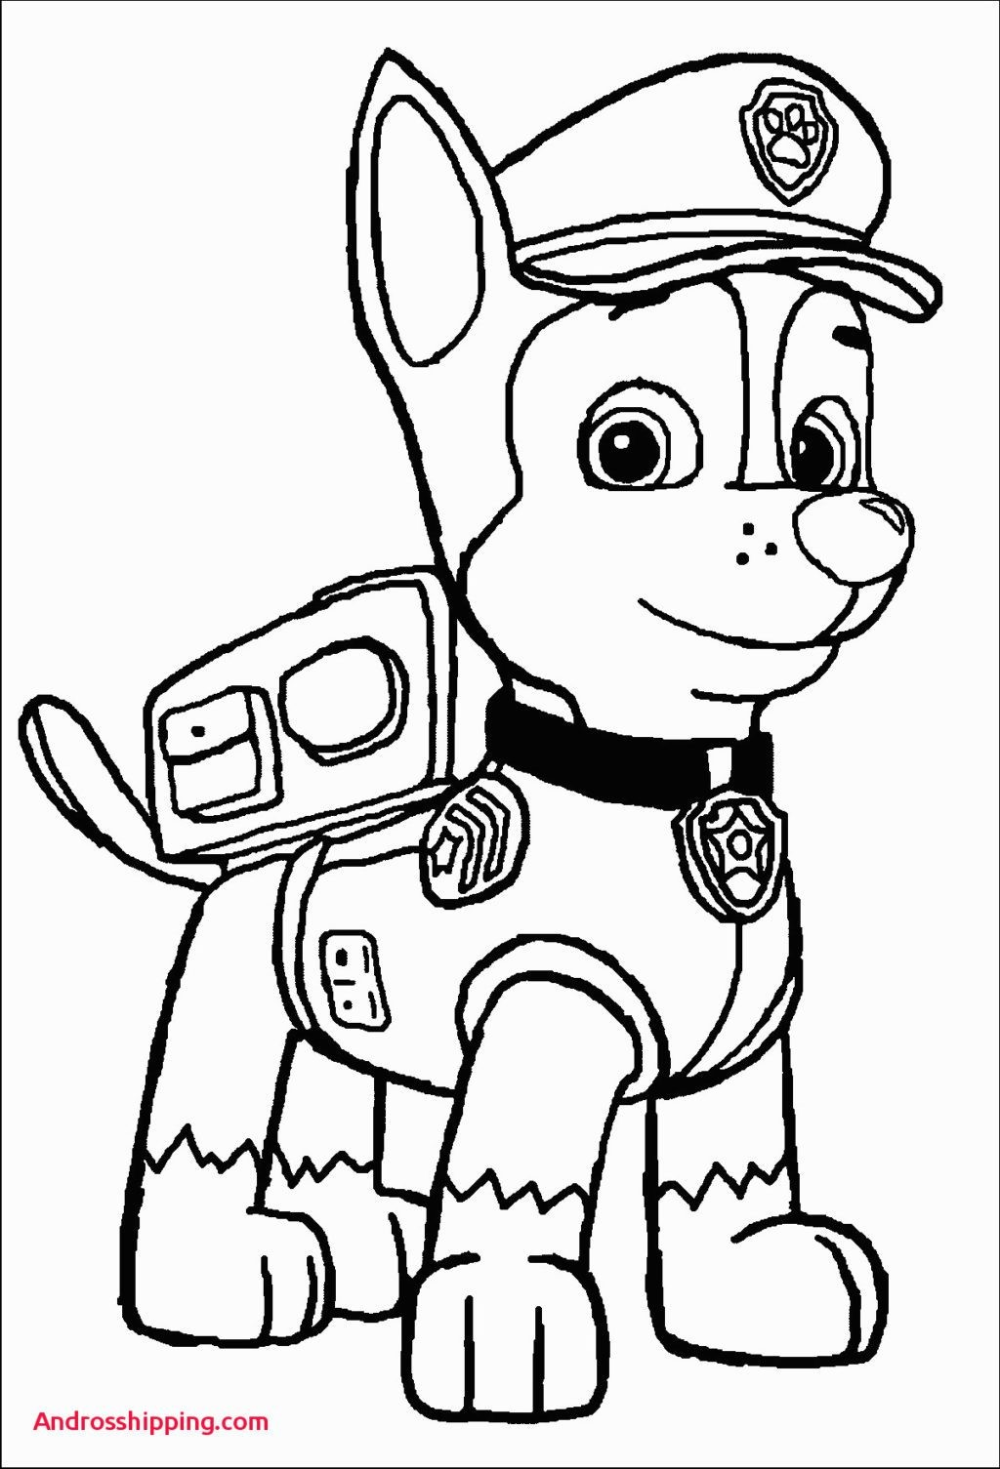 14 Coloring Sheets For Kids In 2020 Paw Patrol Coloring Paw Patrol Coloring Pages Animal Coloring Pages